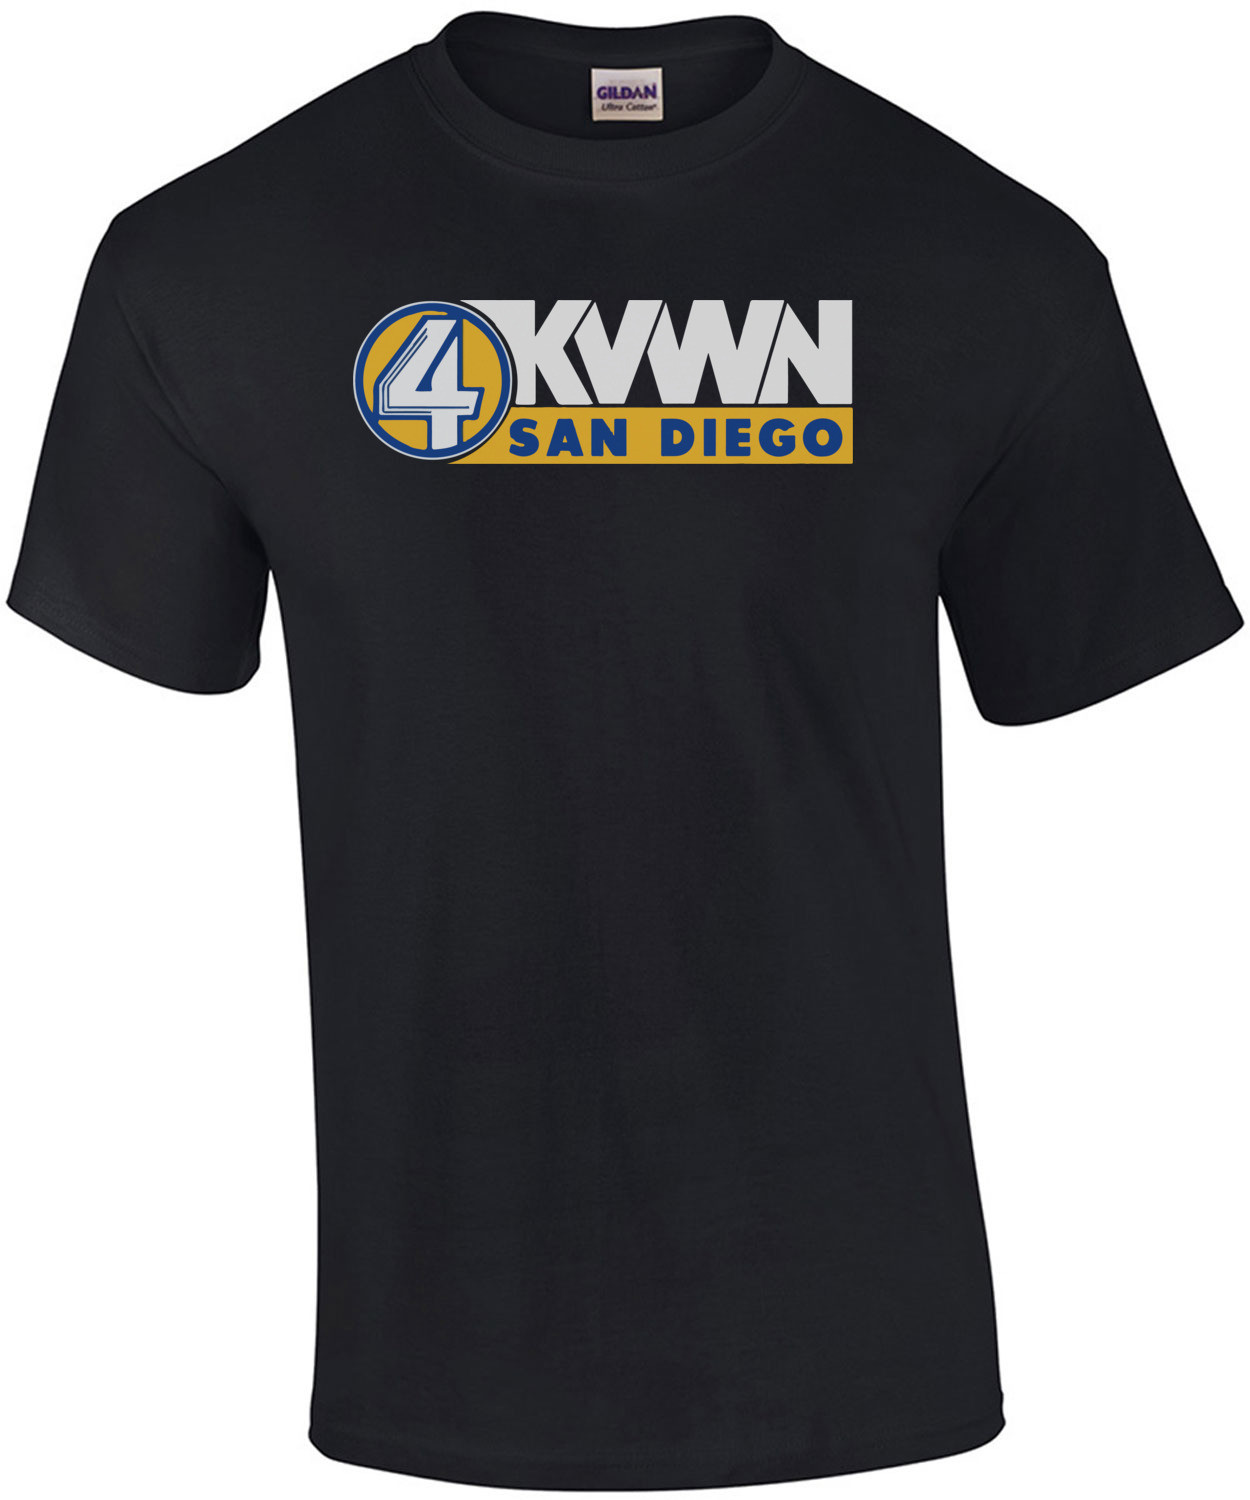 KVWN San Diego - Anchorman: The Legend of Ron Burgundy T-Shirt